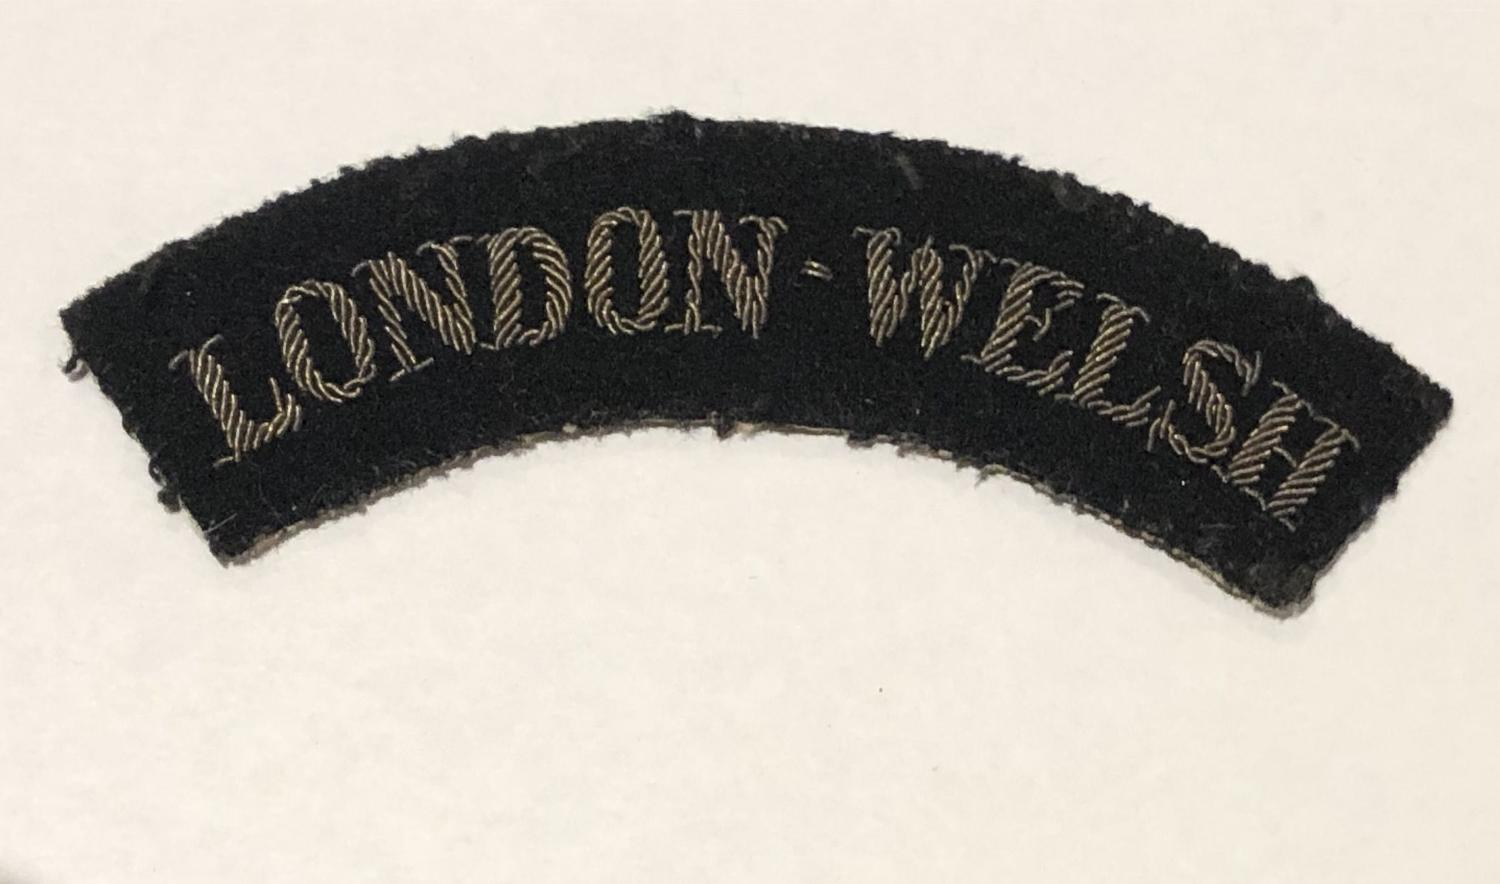 LONDON WELSH rare 99th AA Regt. RA rare WW2 shoulder title.